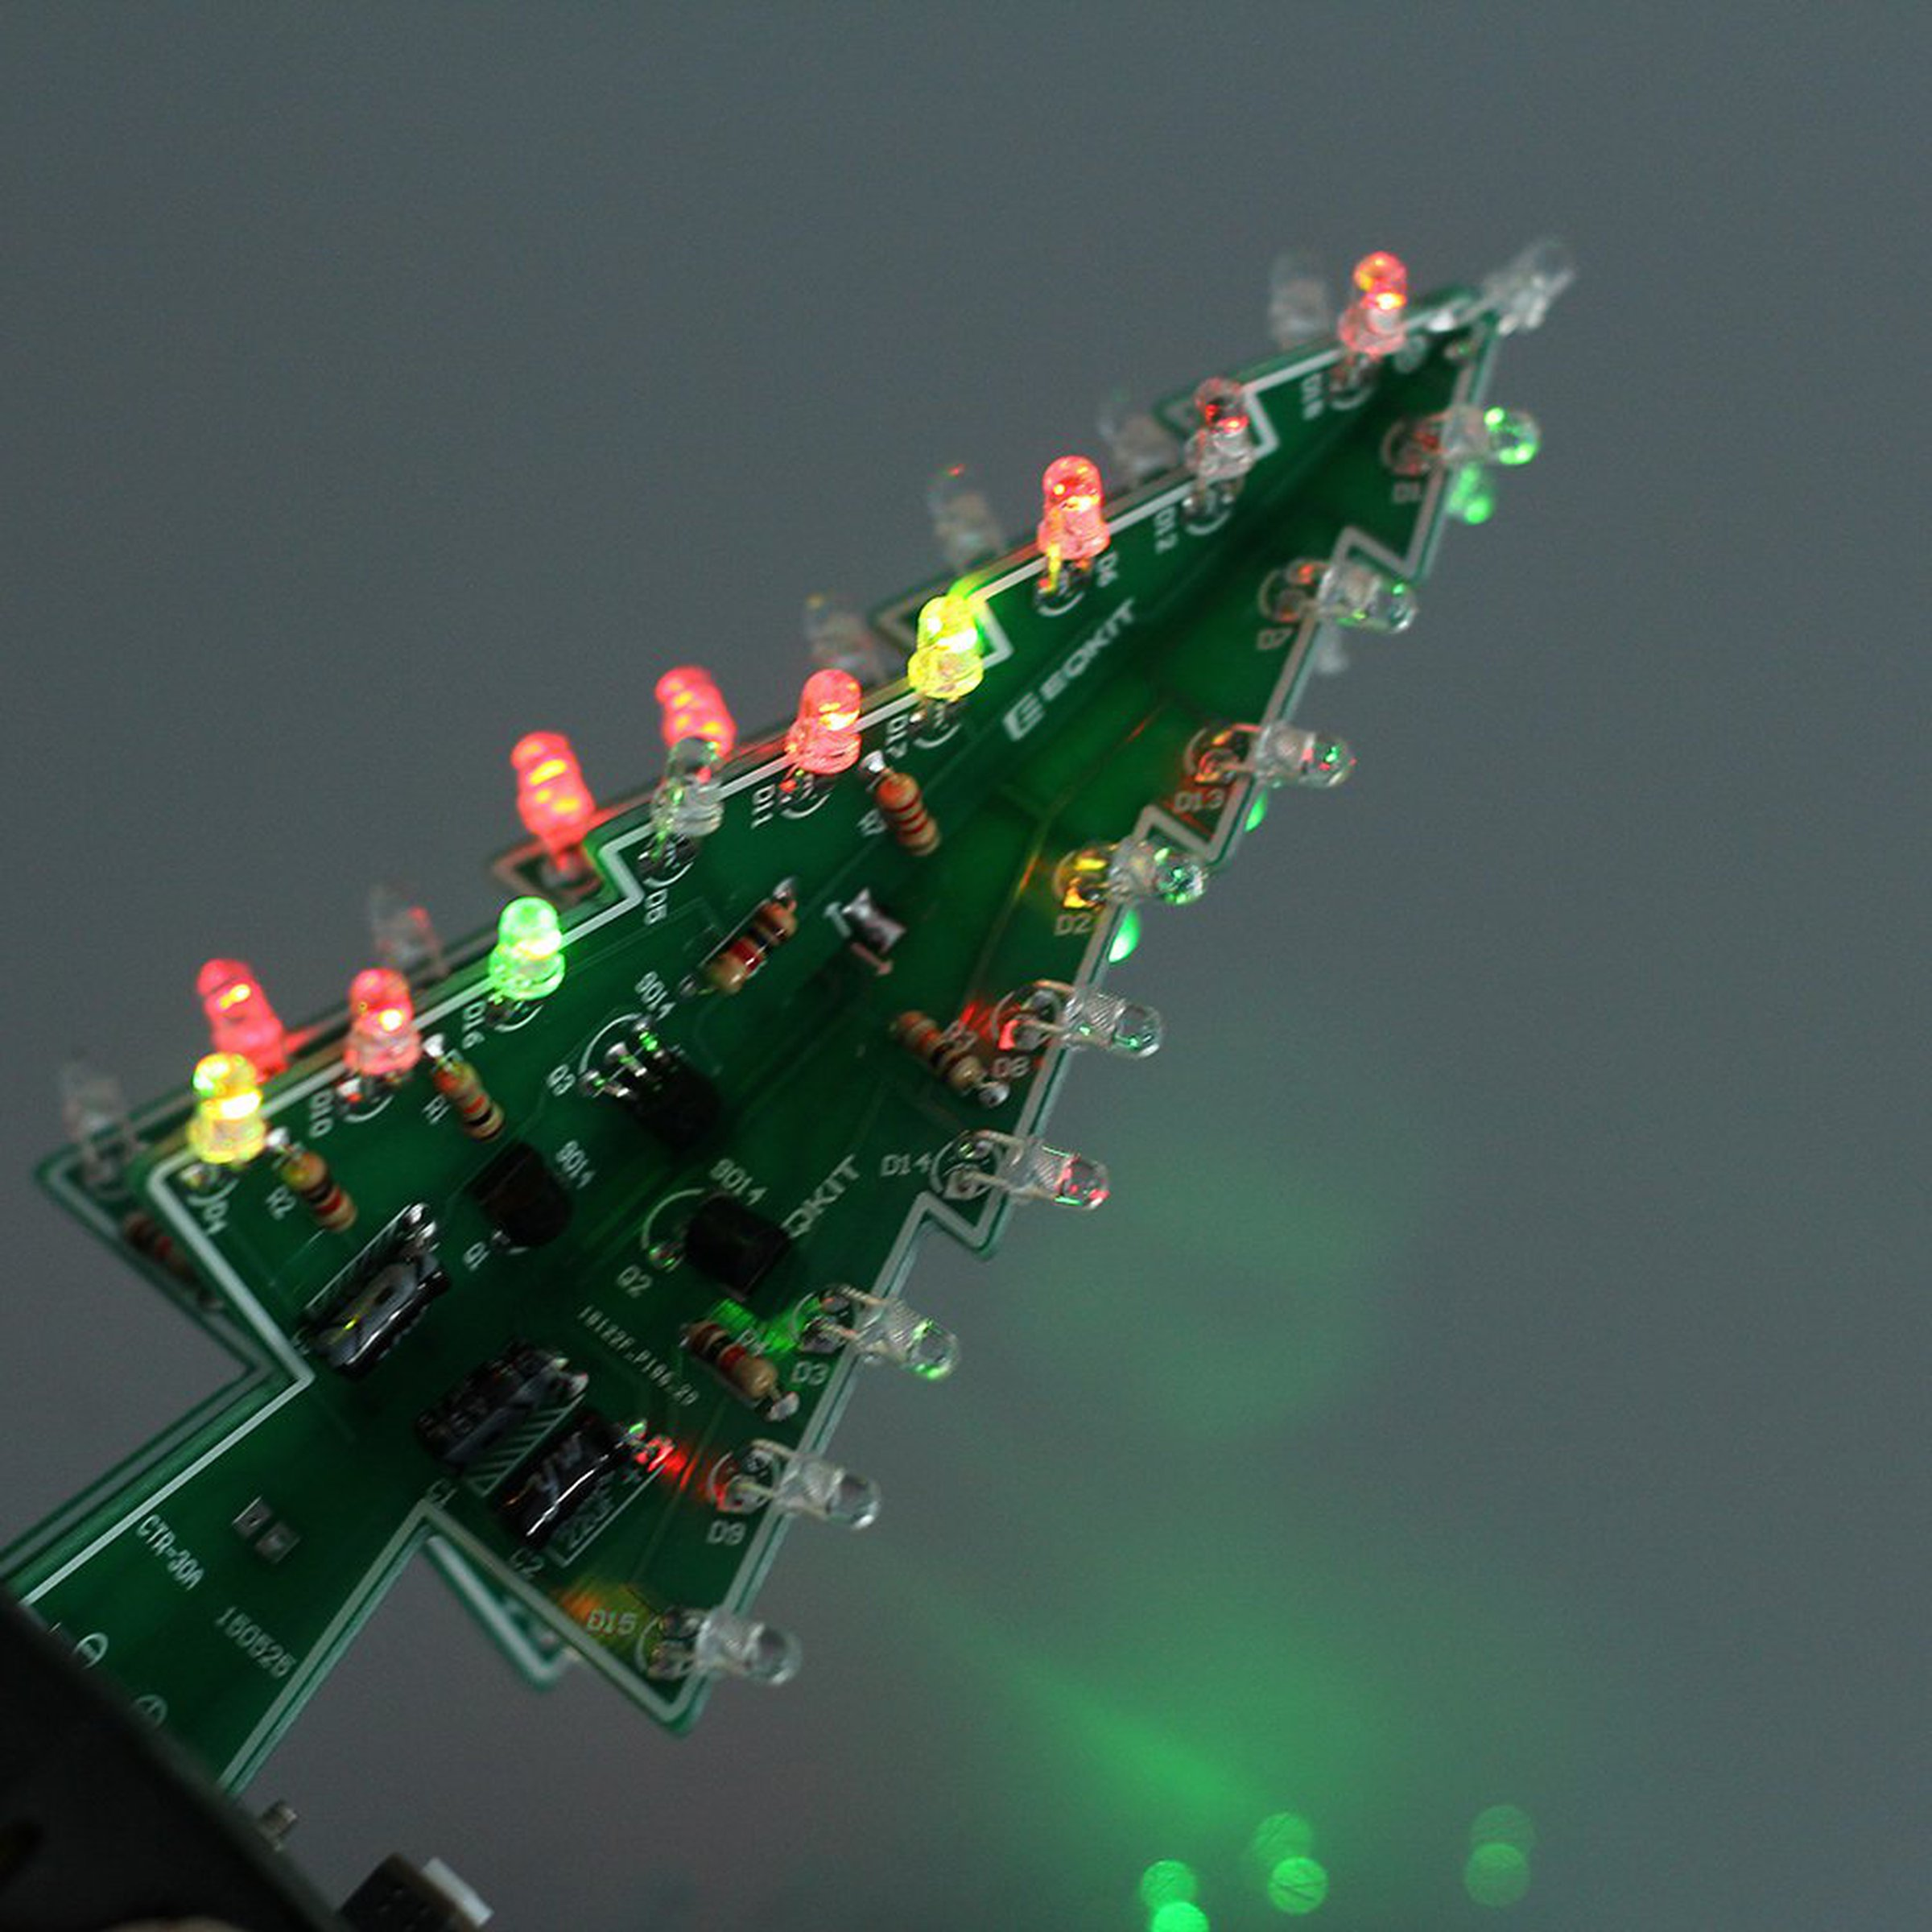 Diy 3d Xmas Tree 7 Color Flash Led Kits7213 From Icstation On Tindie Changing Circuit 3